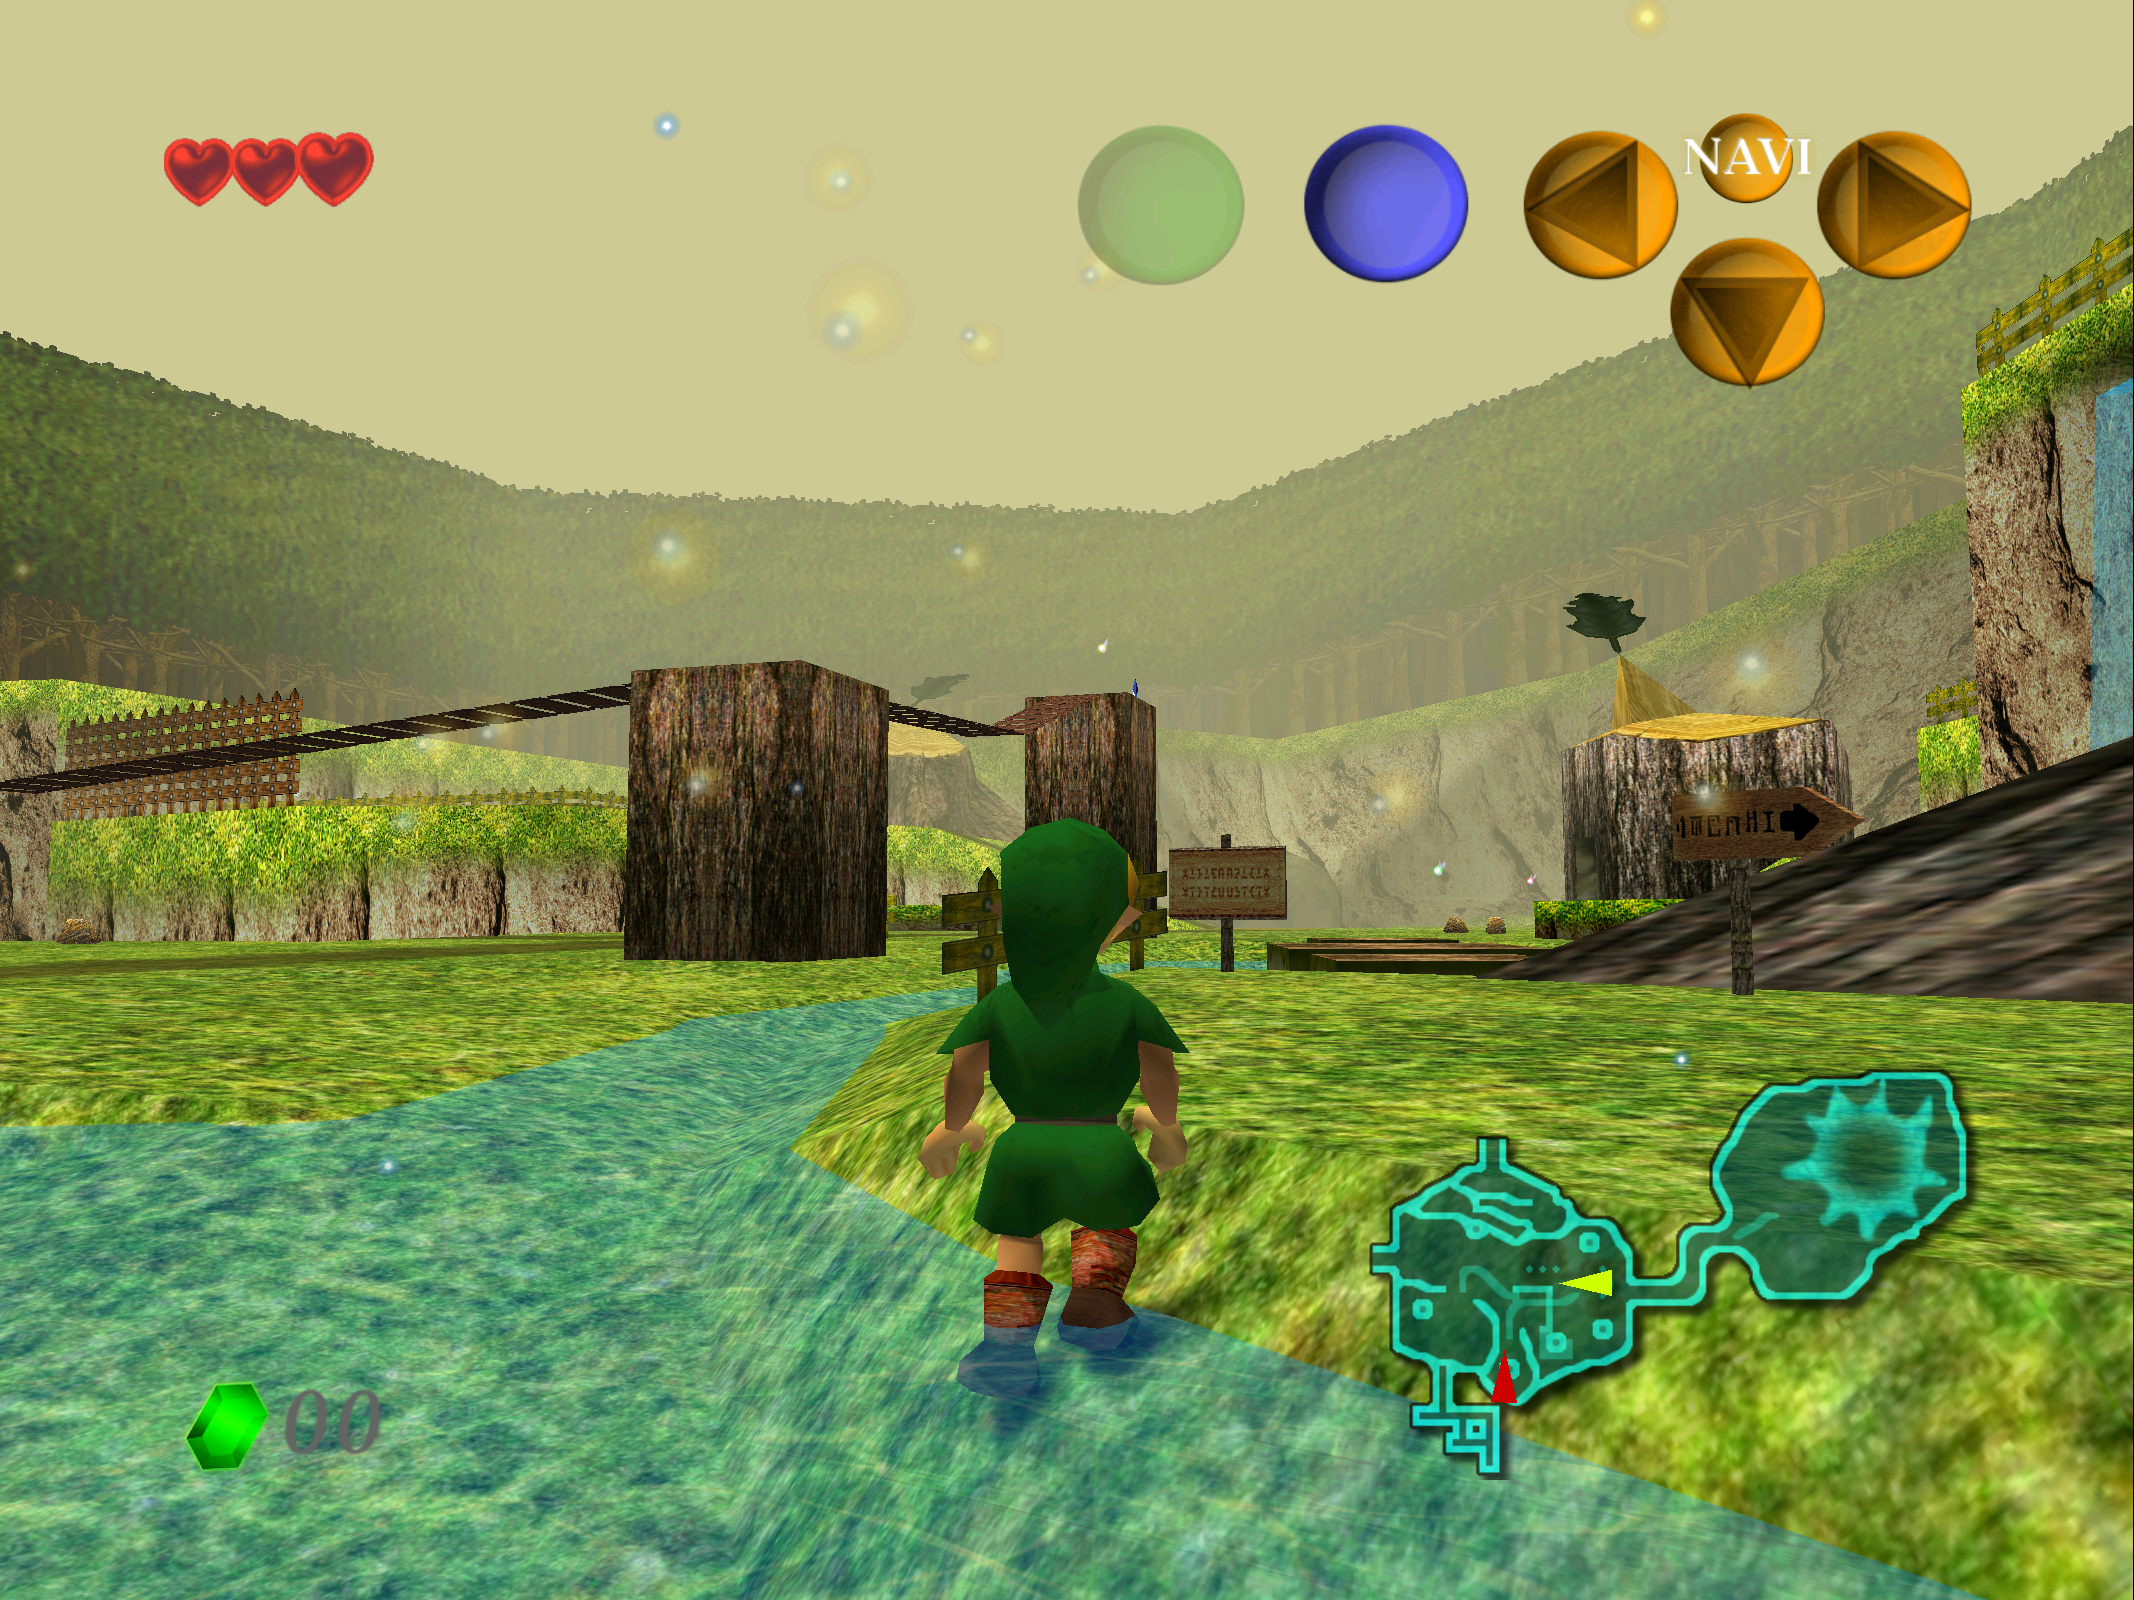 Rendered with HD texture packs on an emulator, <i>Ocarina of Time</i> is like a brand new game.